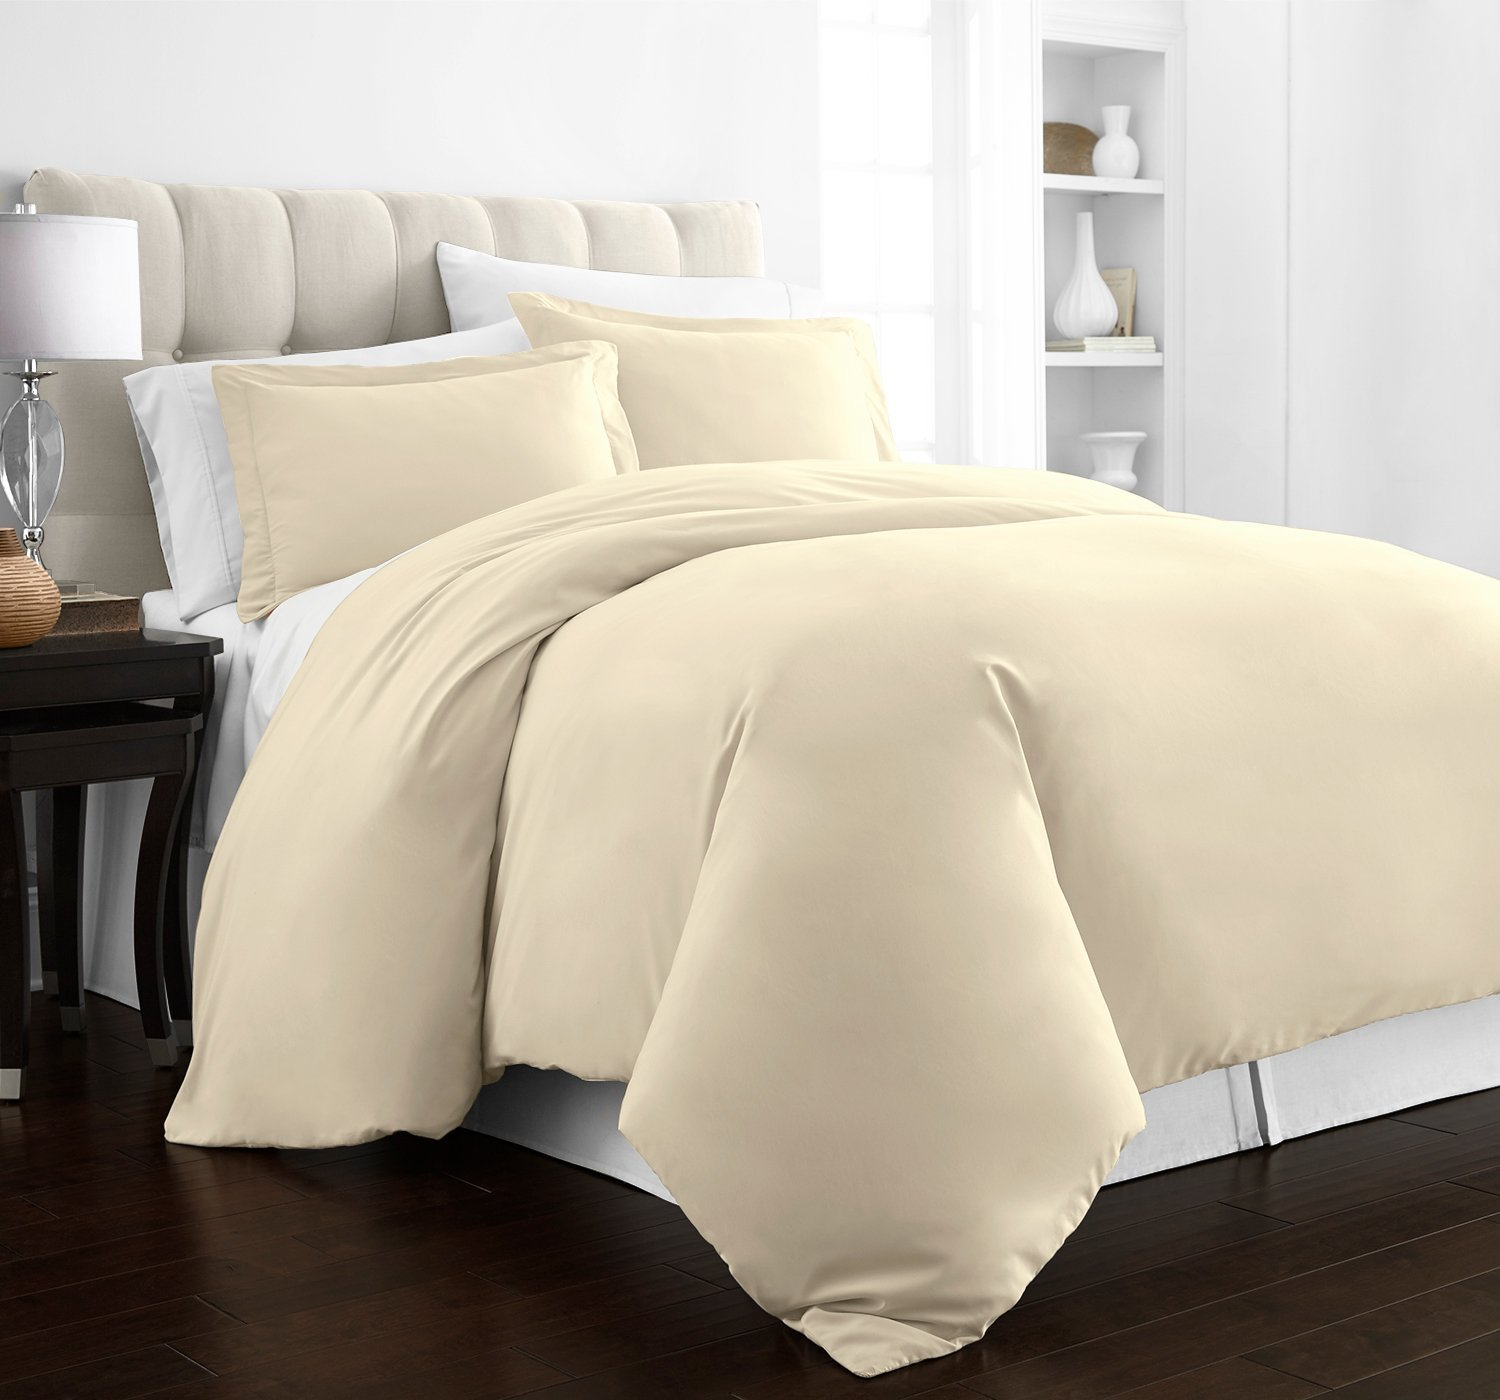 (Full/Queen, Cream) Beckham Hotel Collection Luxury Soft Brushed 2100 Series Microfiber Duvet Cover Set Hypoallergenic Full/Queen Cream B072FQB5Z4 Full/Queen|クリーム クリーム Full/Queen